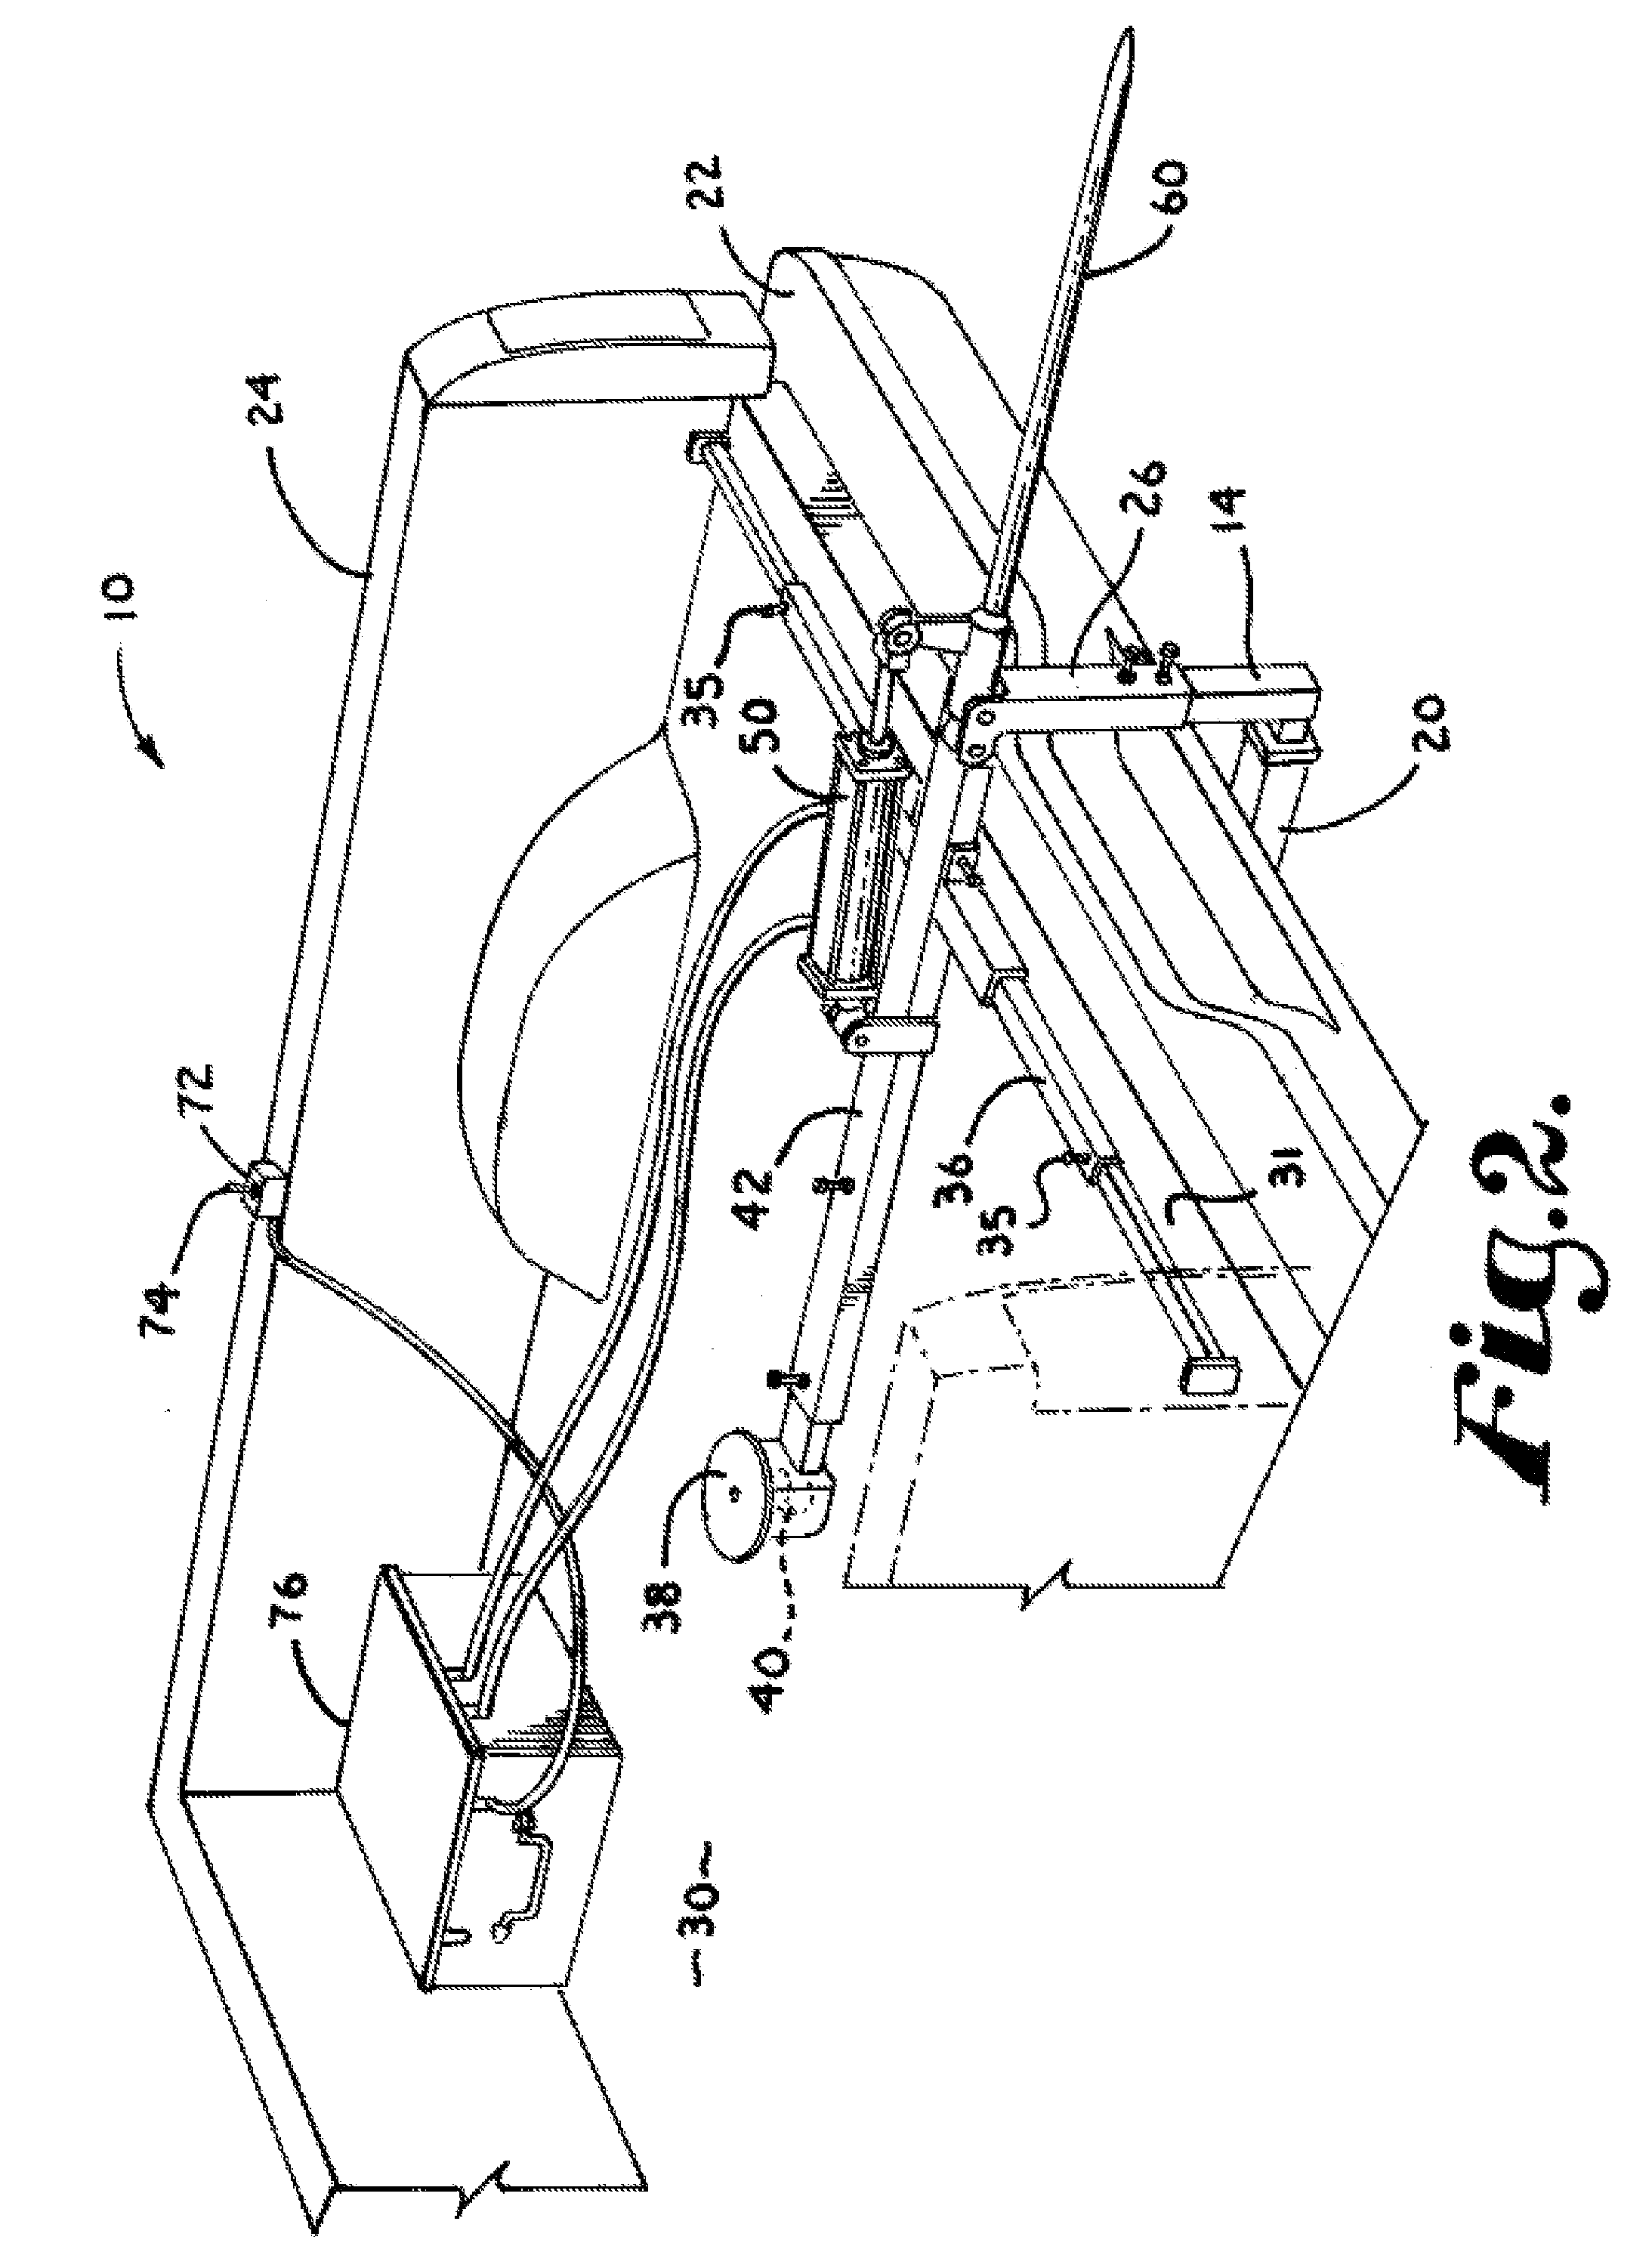 Gravely 816s Wiring Diagram Gravely 816s Clutch Wiring